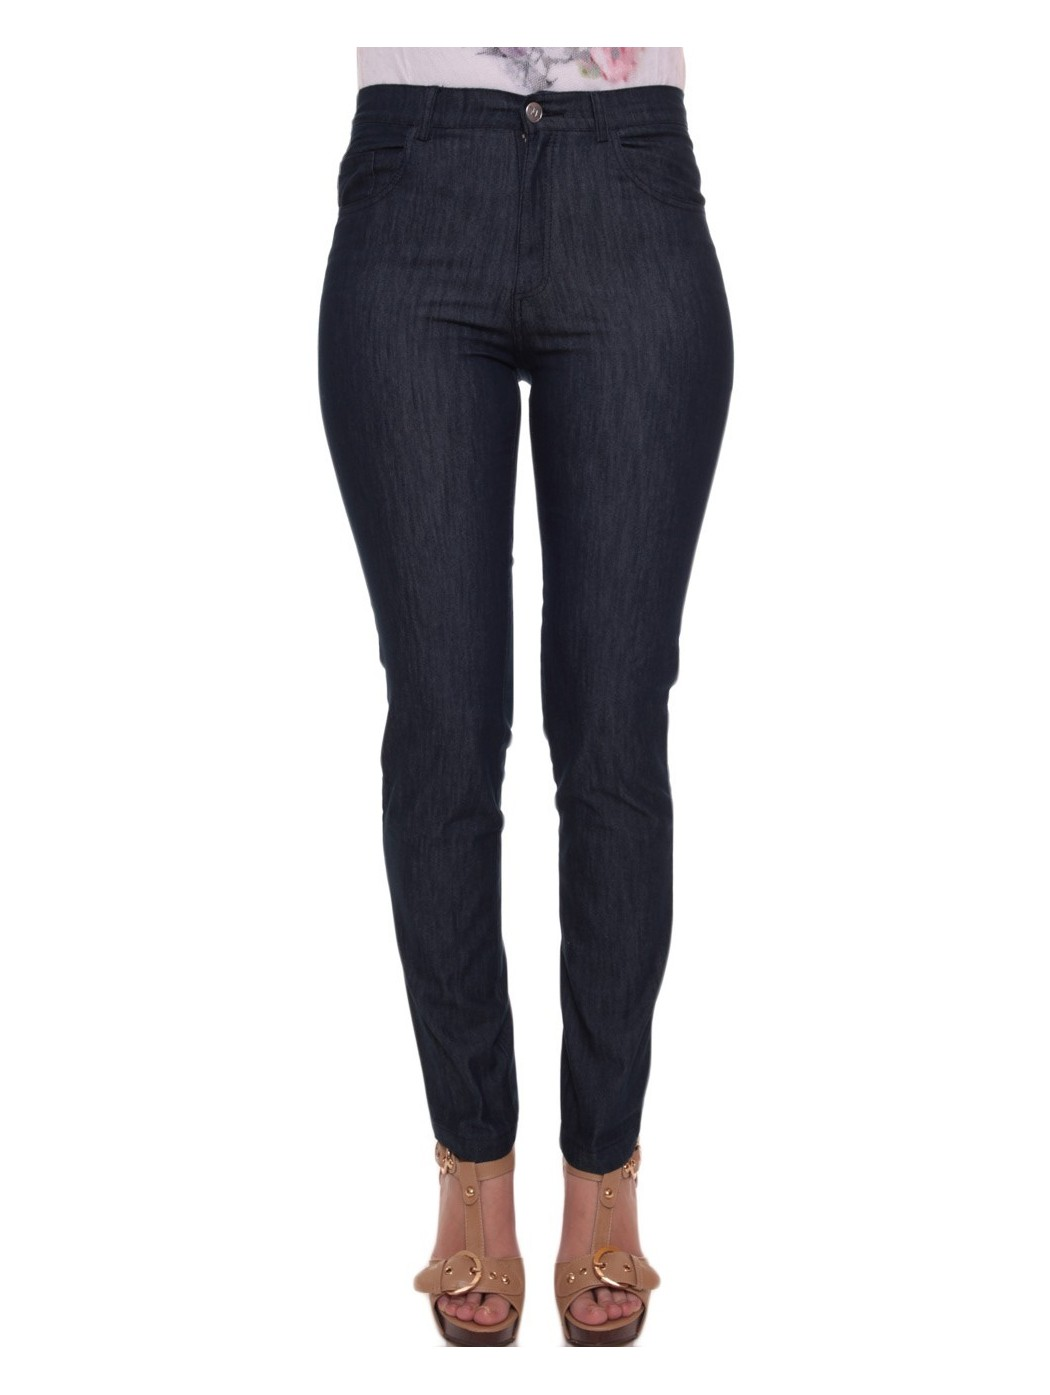 Musetti jeans